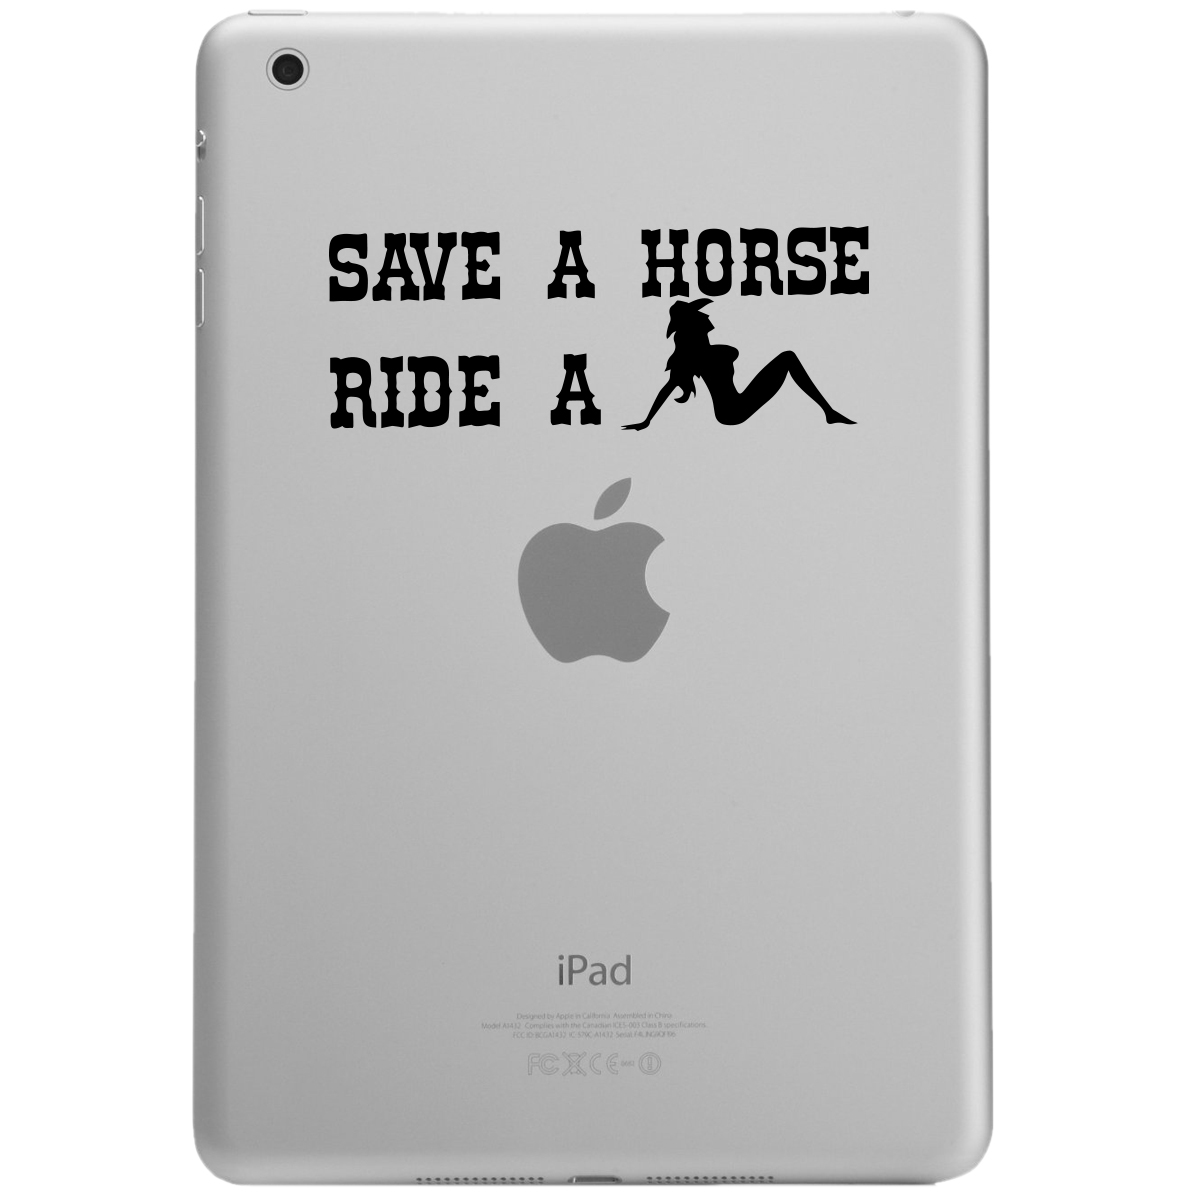 Funny Country Save a Horse Ride a Cowgirl iPad Tablet Vinyl Sticker Decal